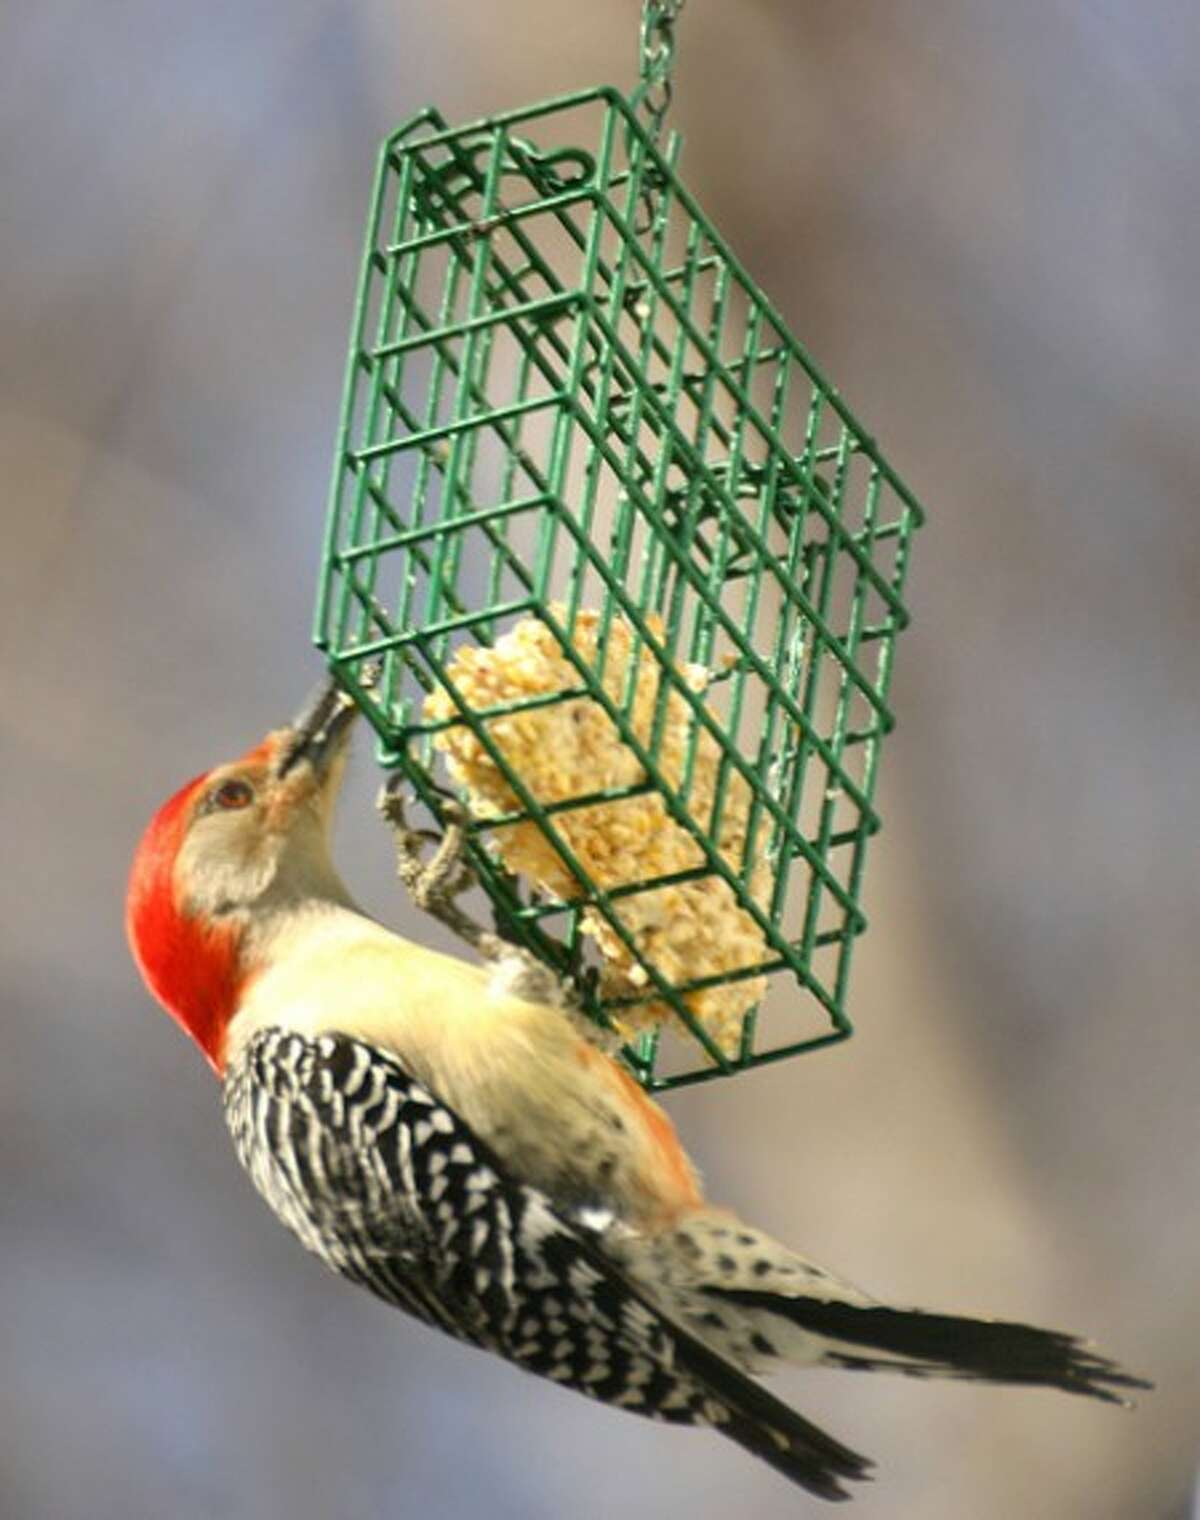 Photo by CHRIS BOSAK Red-bellied woodpeckers have loud, odd calls. Note the red feathers on the belly of the bird, hence its name.